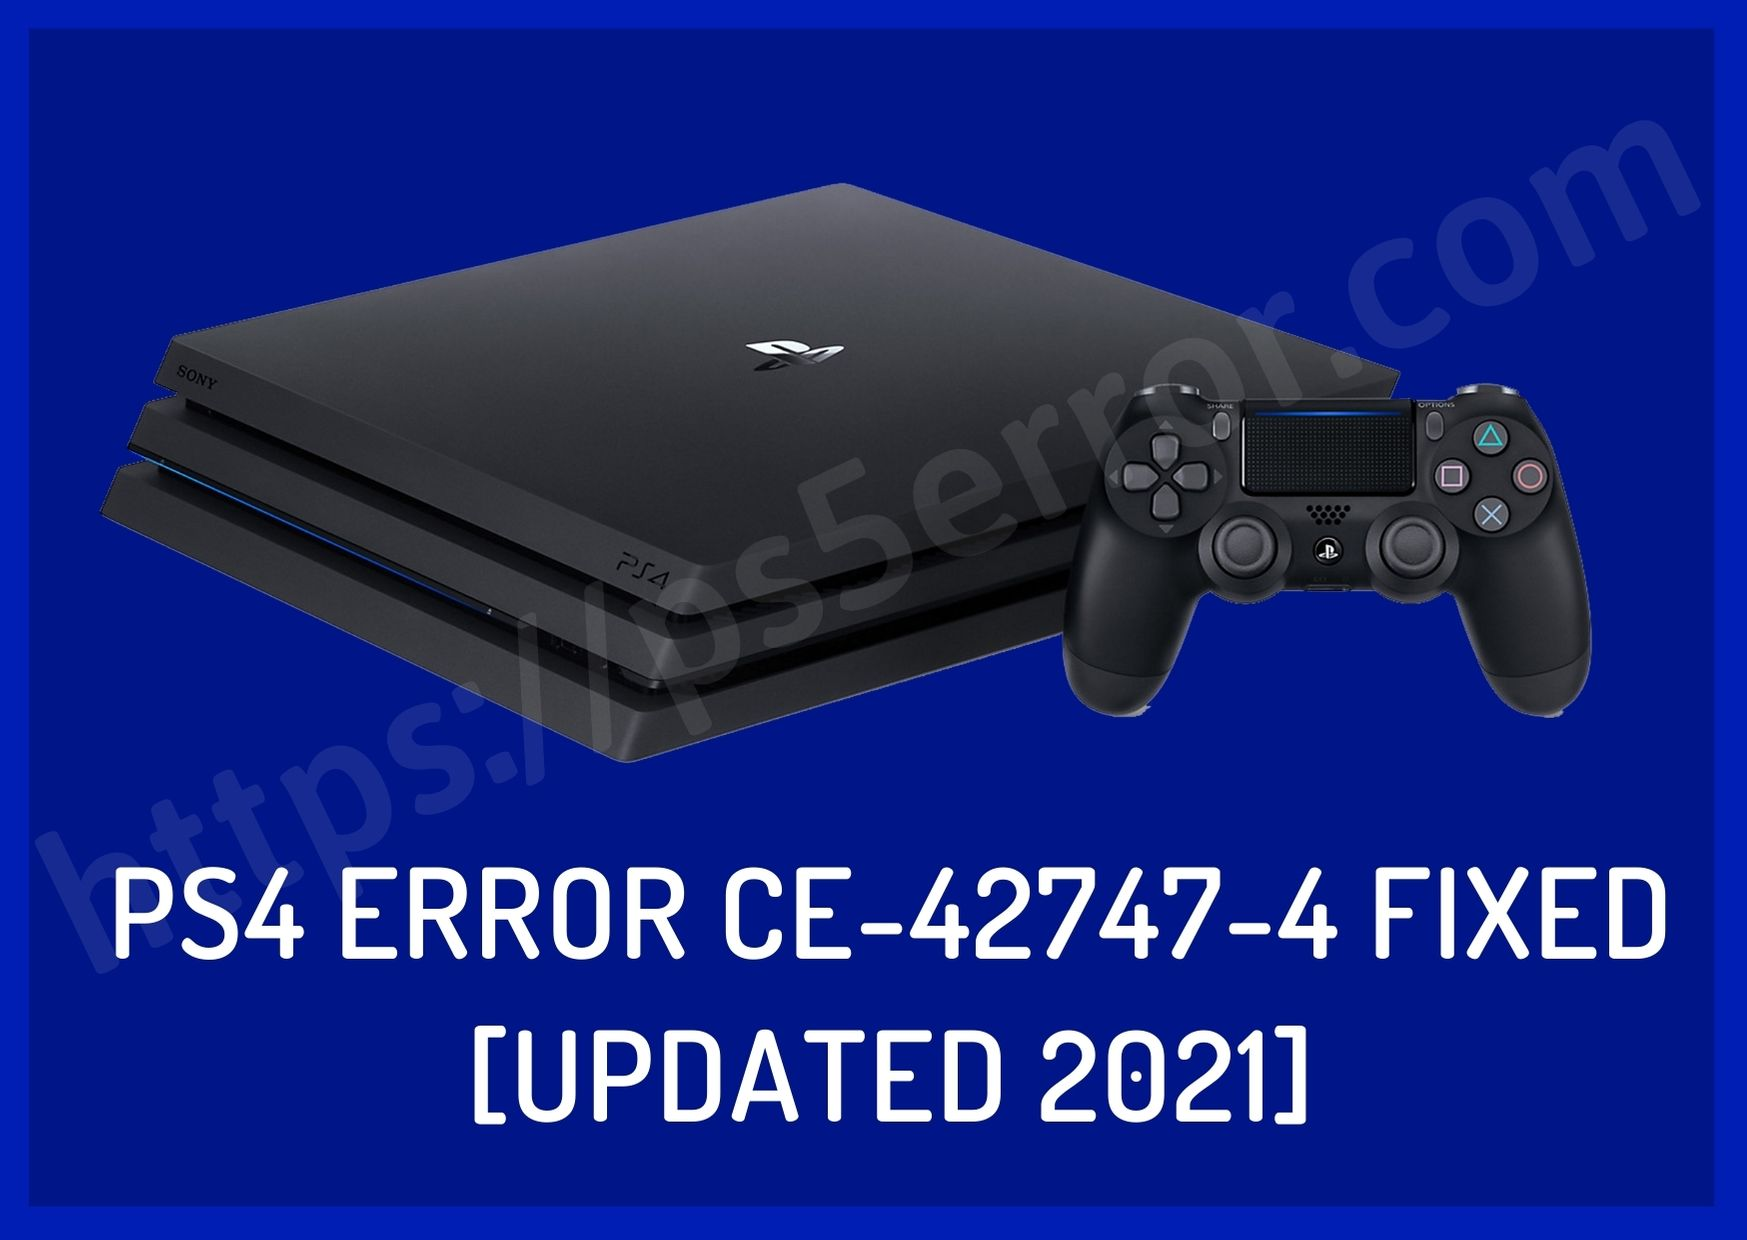 PS4 Error CE-42747-4 Fixed [Updated 2021]